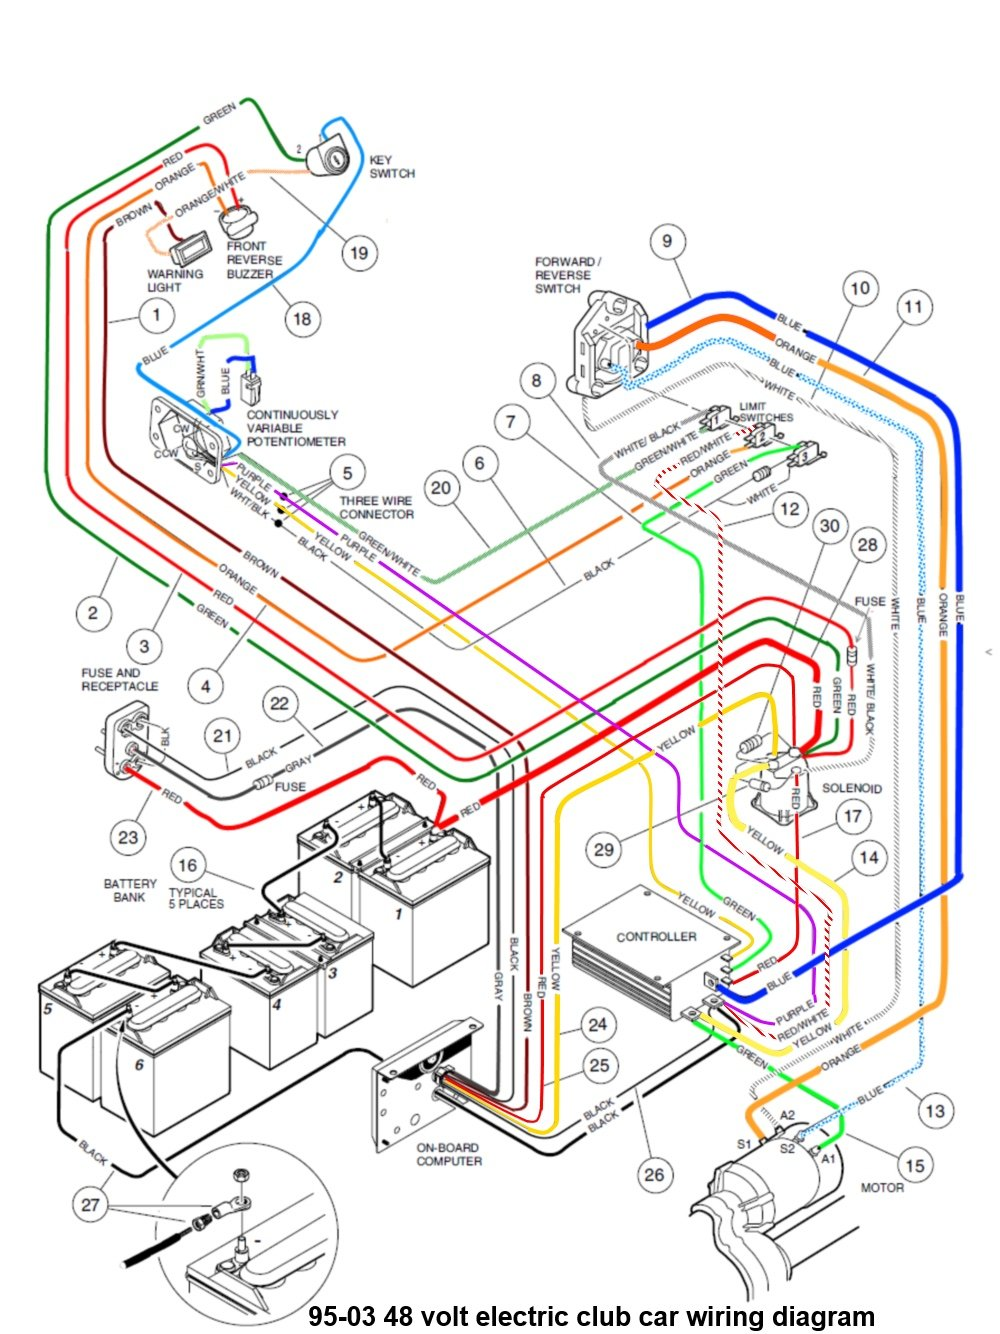 2014 club car wiring diagram 36 volt club car wiring diagram #5